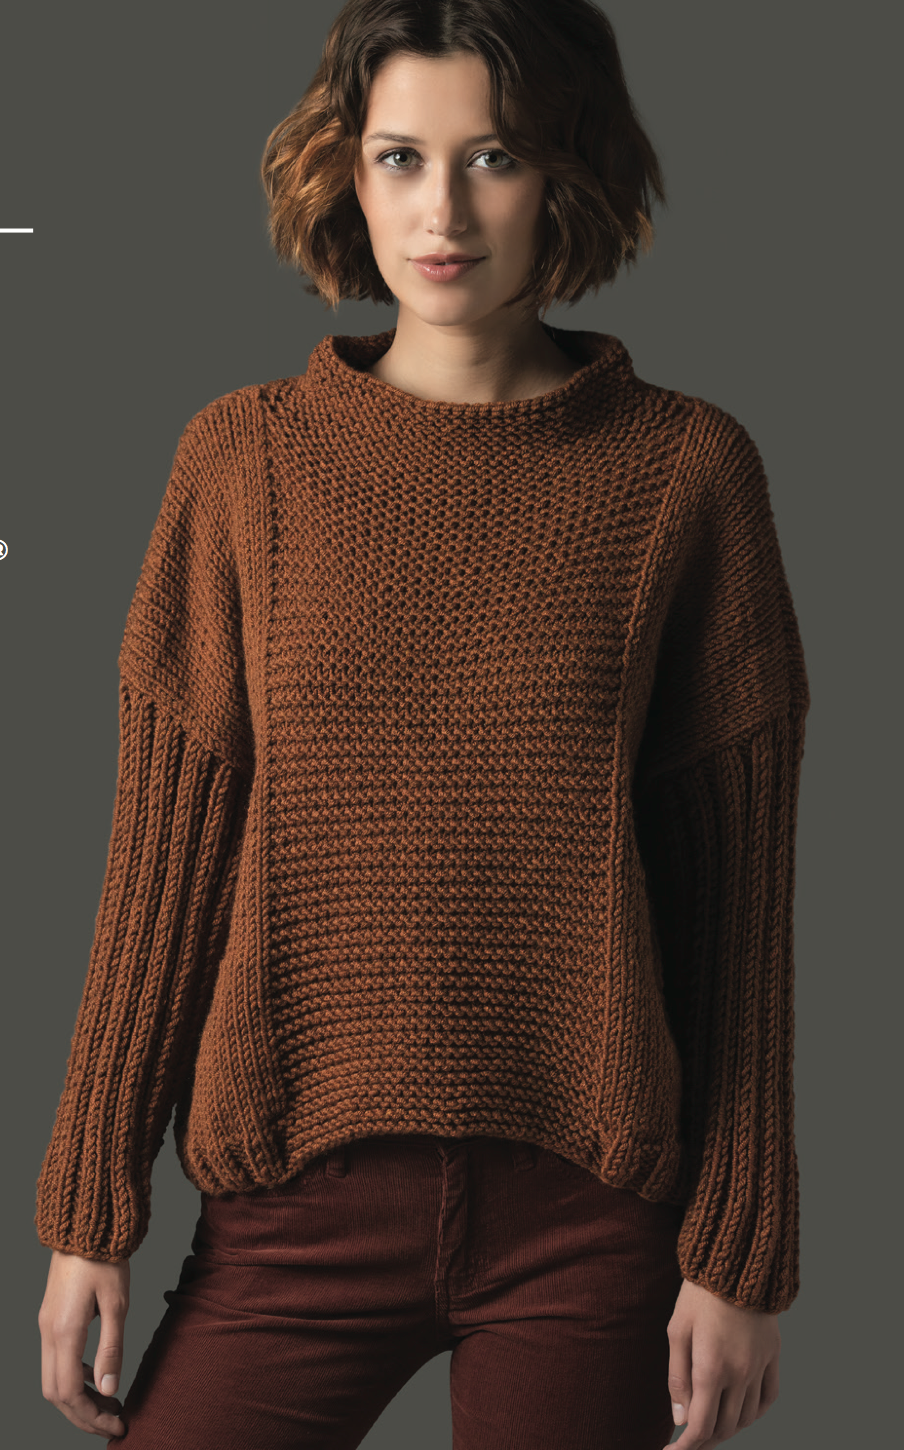 Knit Pullover Pattern By Irina Poludnenko Easy Sweater